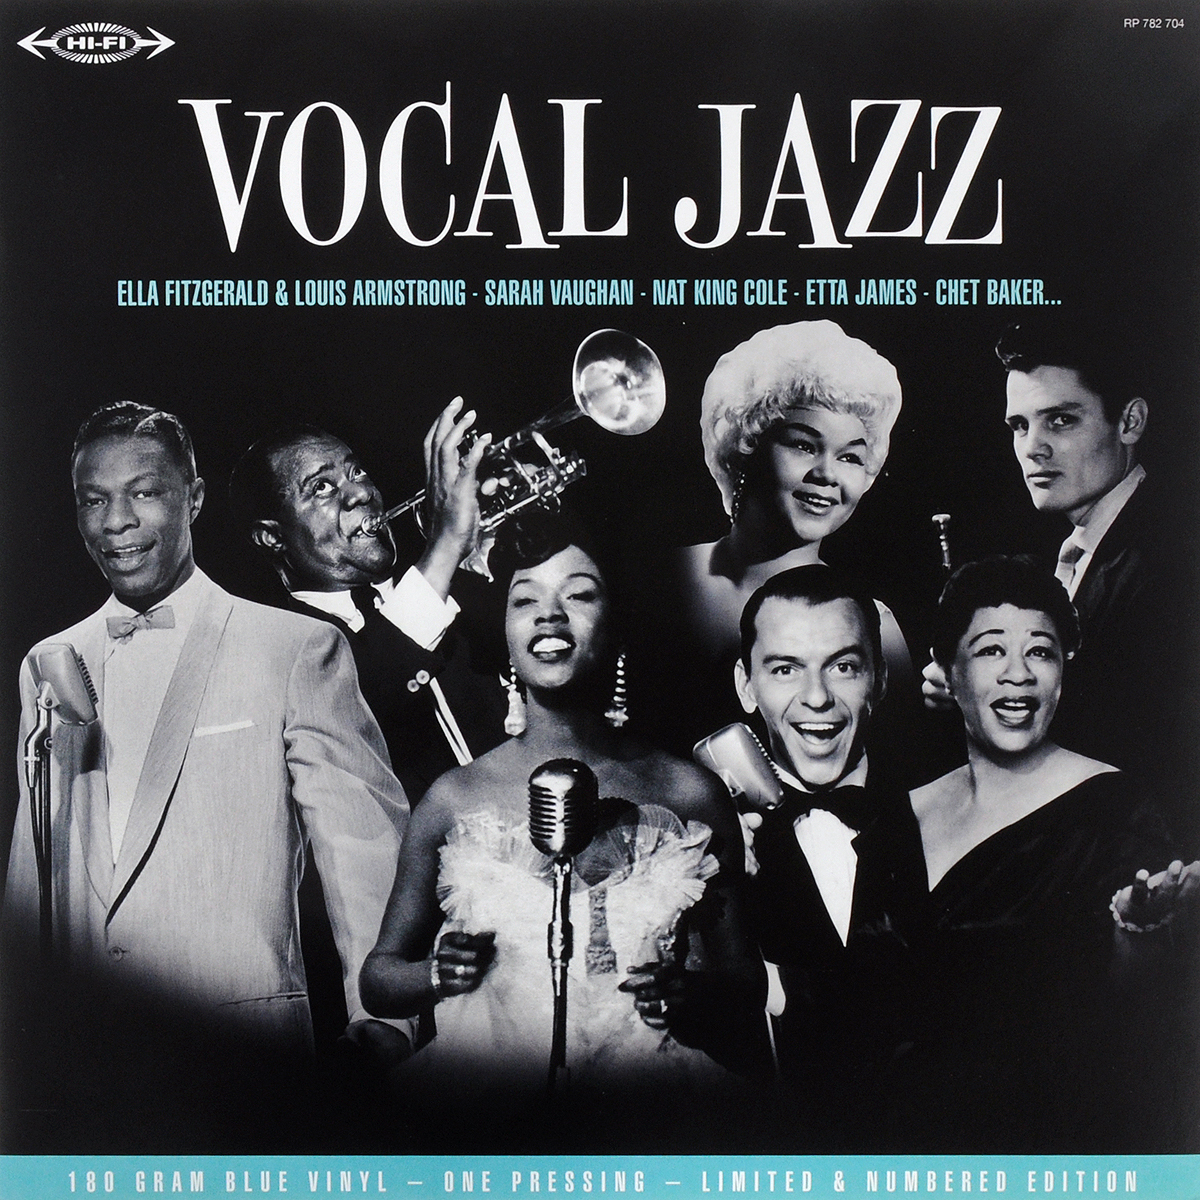 Этта Джеймс,Луи Армстронг Vocal Jazz (Blue Vinyl) (Lp+Cd) гантели wizard rat jlsyl688